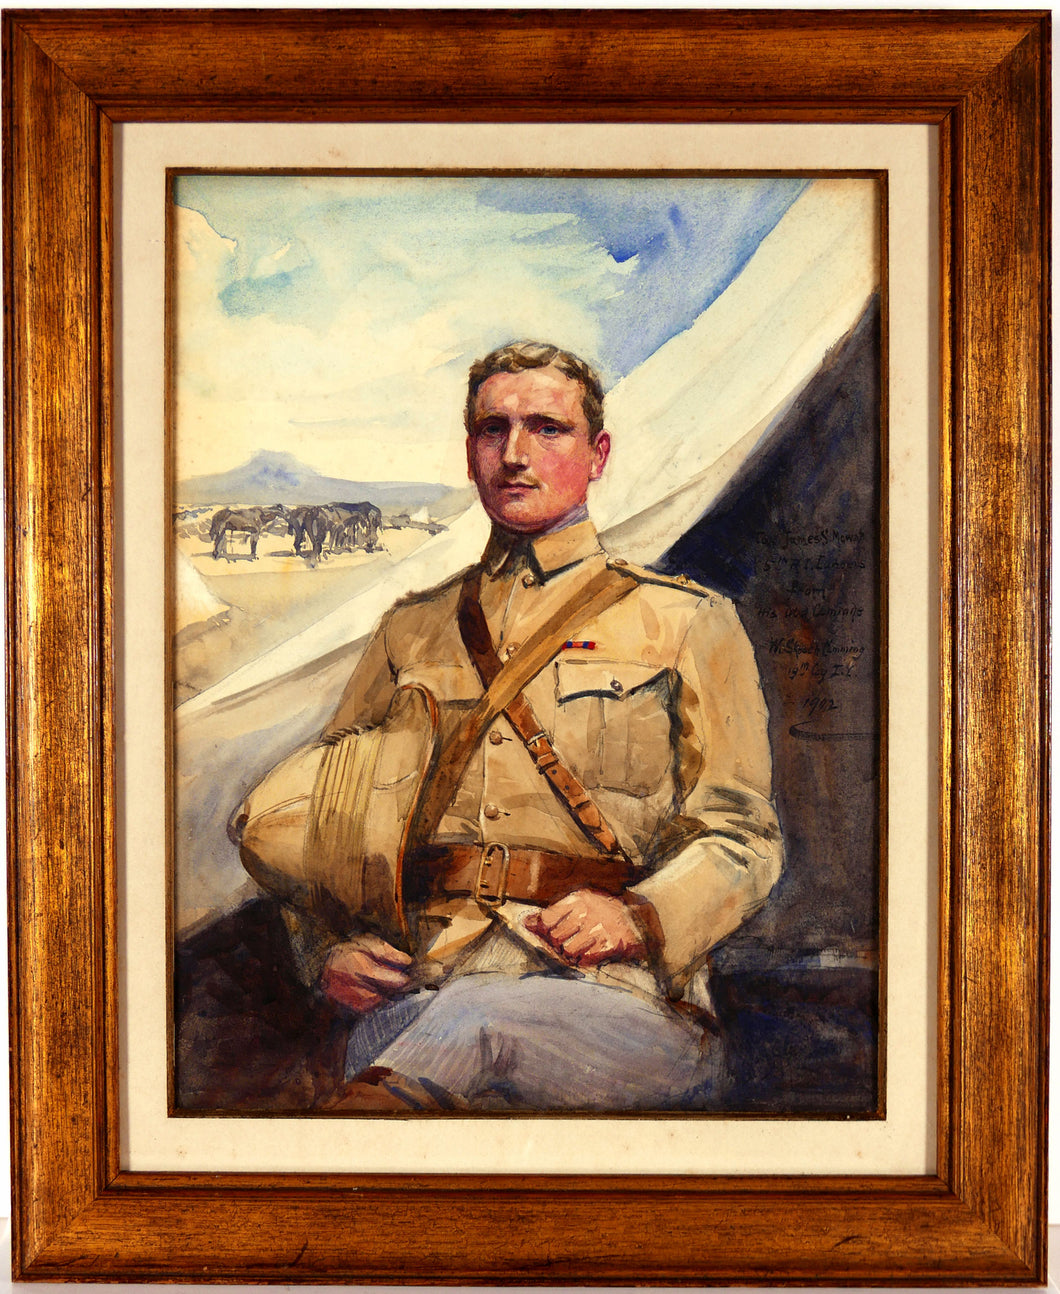 Portrait of Second Lieutenant J.S. Mowat, 5th Royal Irish Lancers, late Imperial Yeomanry, 1902